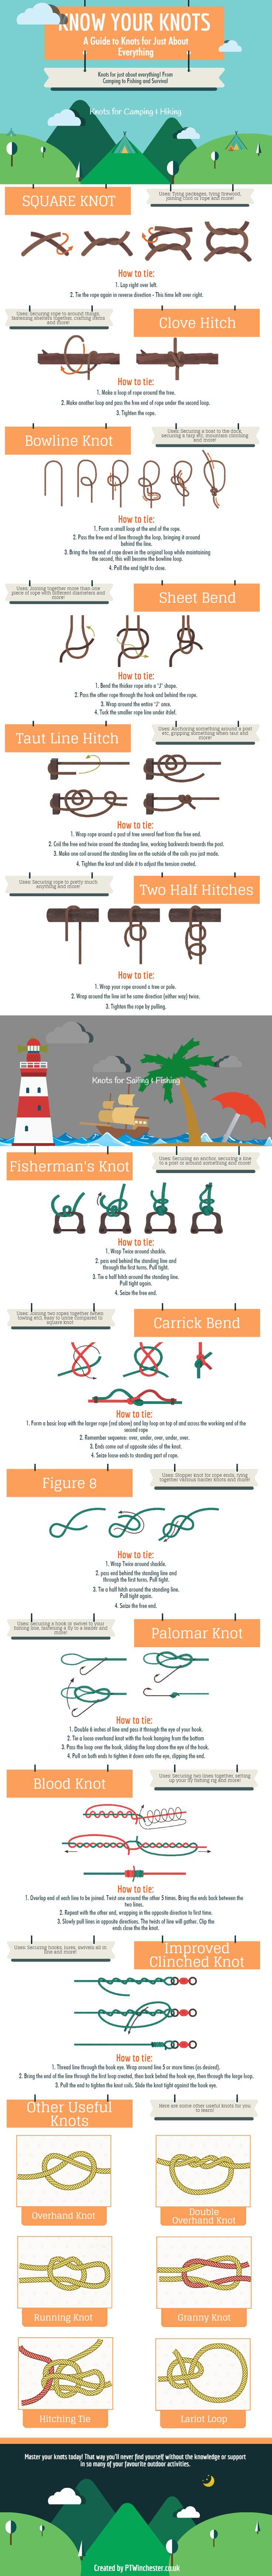 No one said that tying knots was easy. However, if you like spending time outdoors, it is important to know at least some basic knots that can help save your life one day or, at the very least, get you out of a tricky situation. The below infographic from PT Winchester takes a quick look …